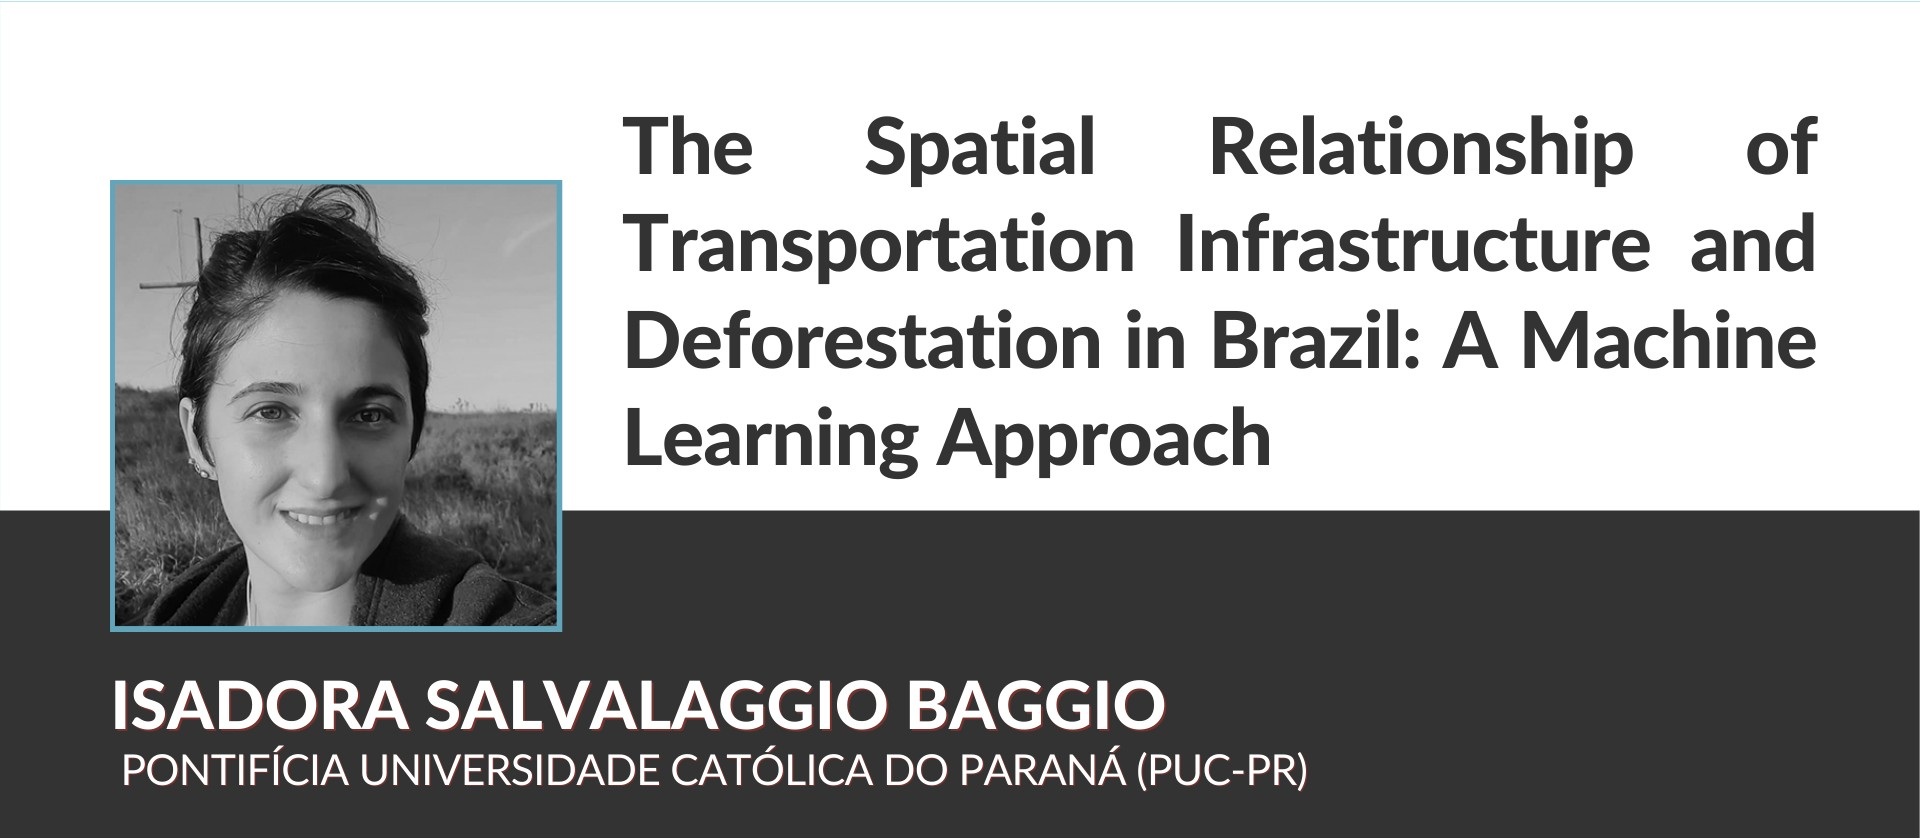 Isadora Salvalaggio Baggio (PUCPR) - Título do trabalho: The Spatial Relationship of Transportation Infrastructure and Deforestation in Brazil: a Machine Learning Approach